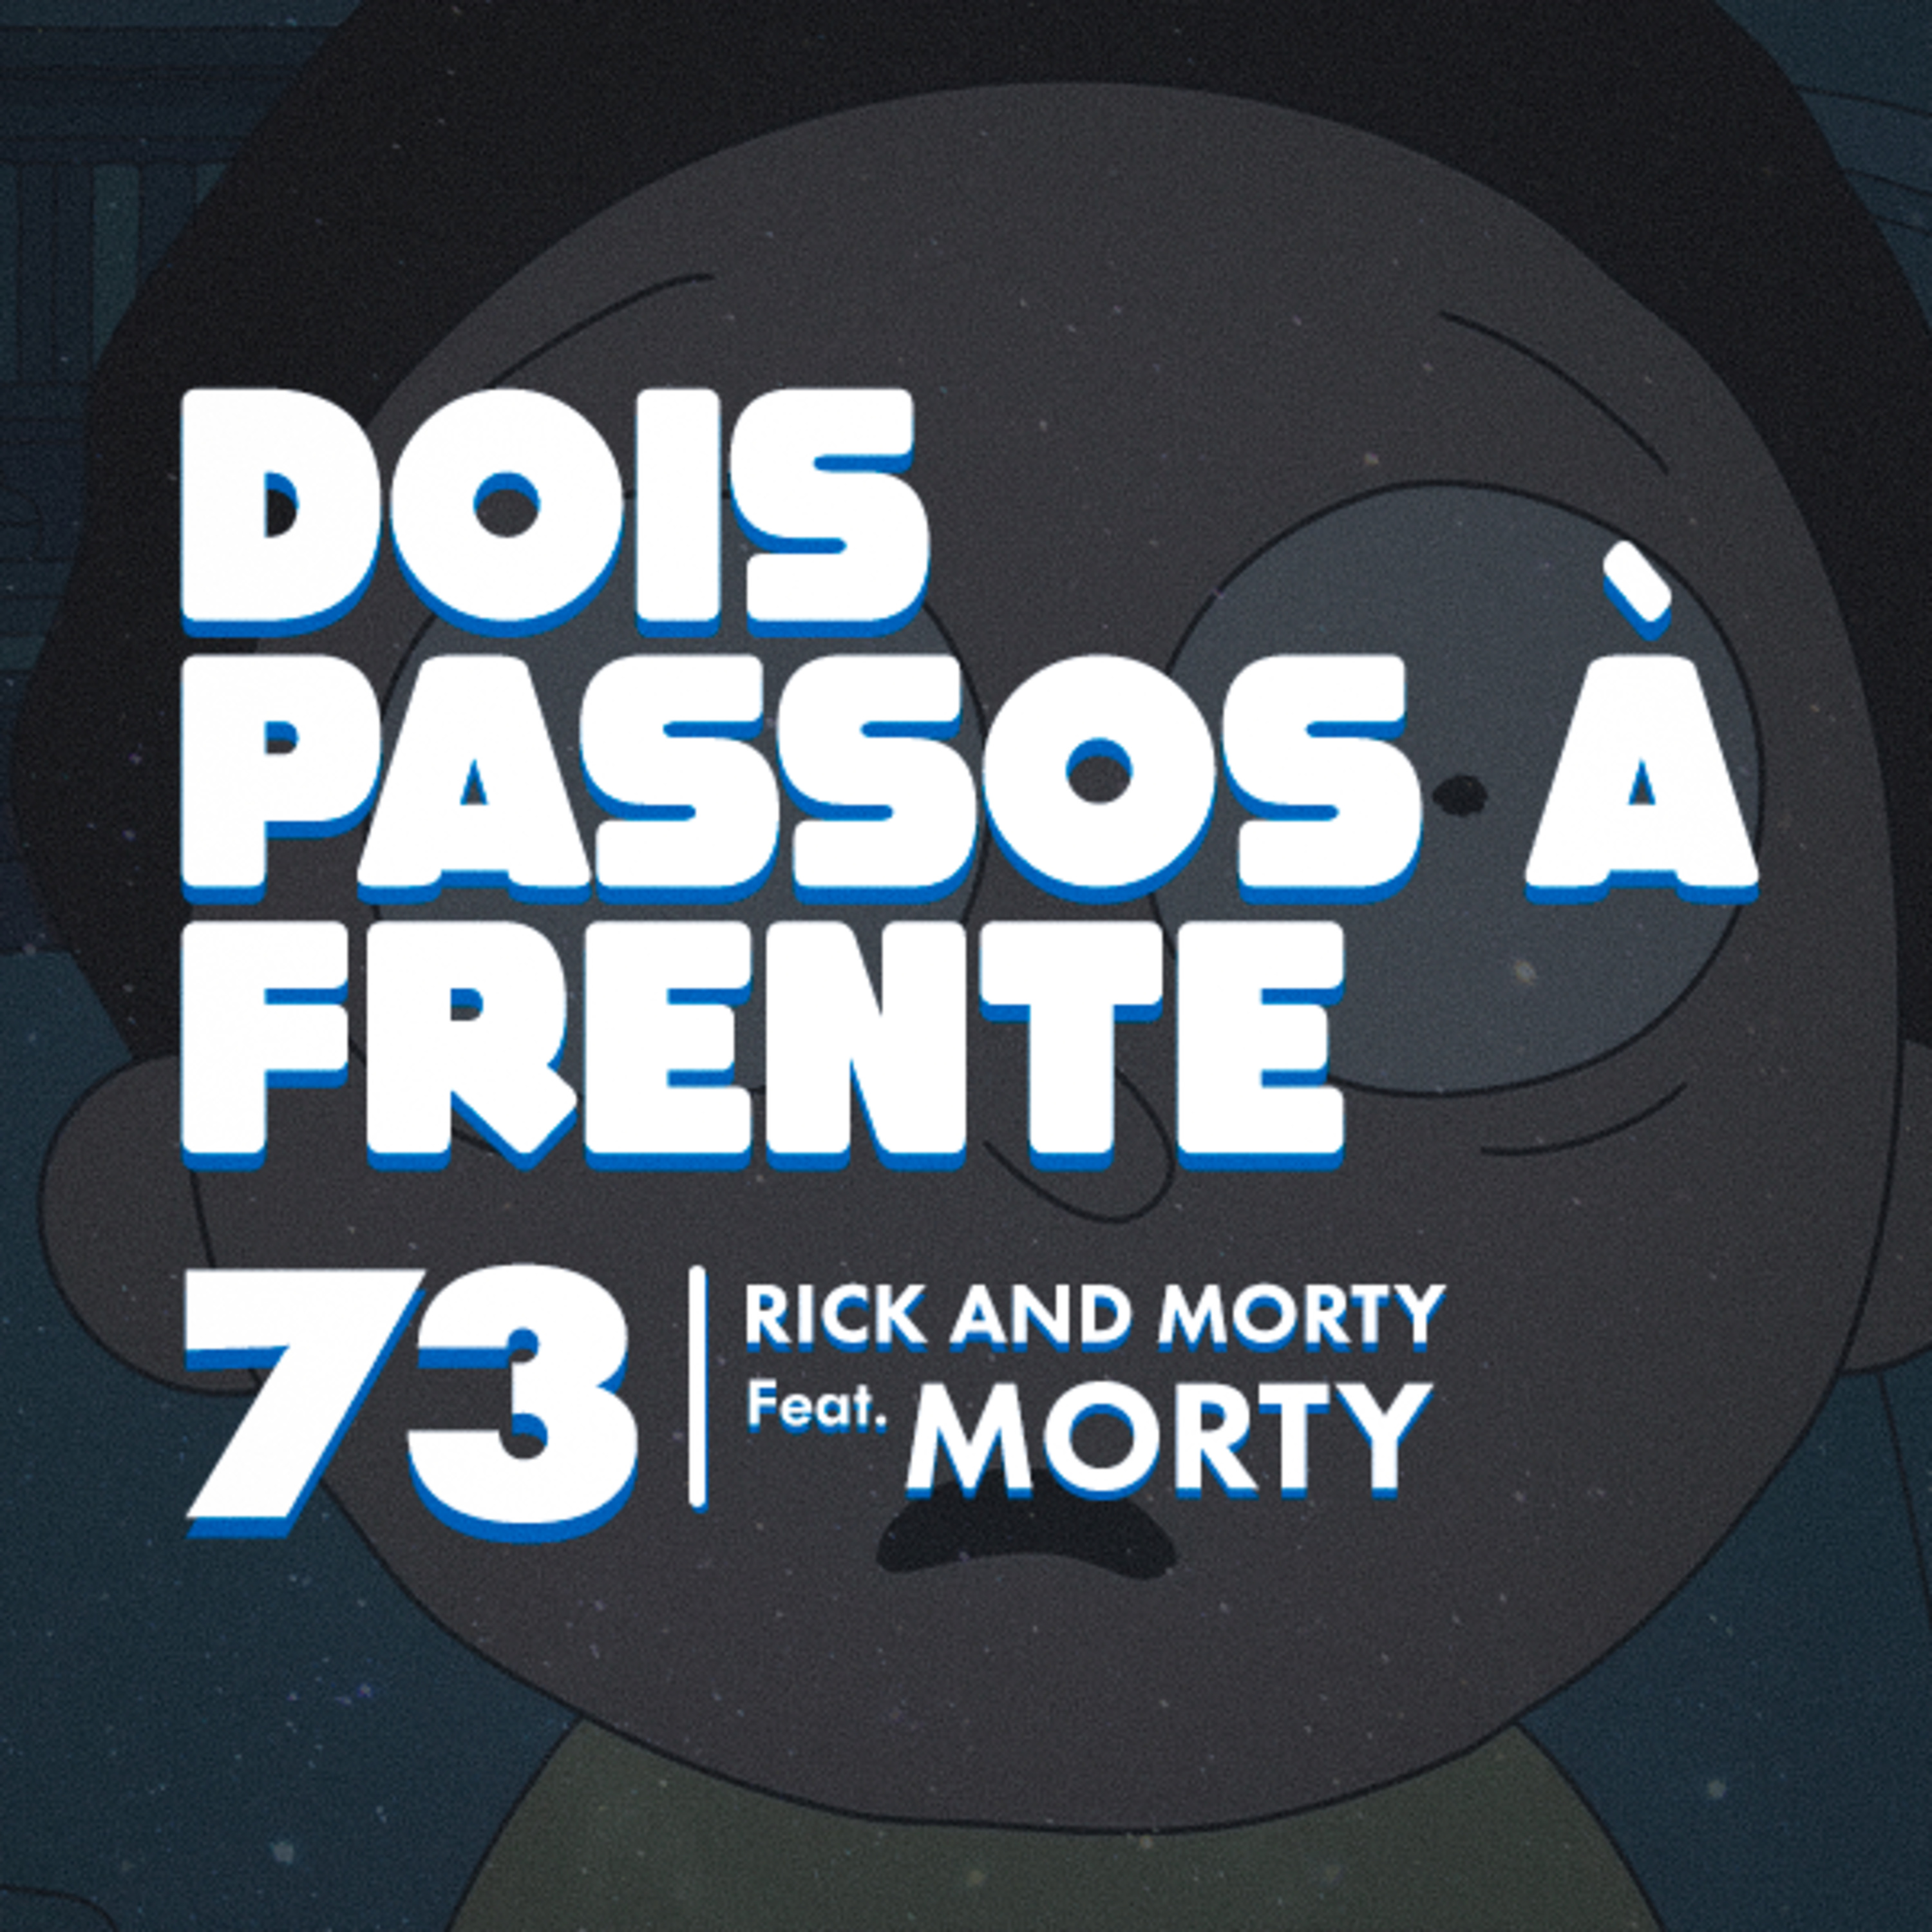 Rick and Morty - Feat. Morty (Renan Alonso) #73 Dois Passos à Frente